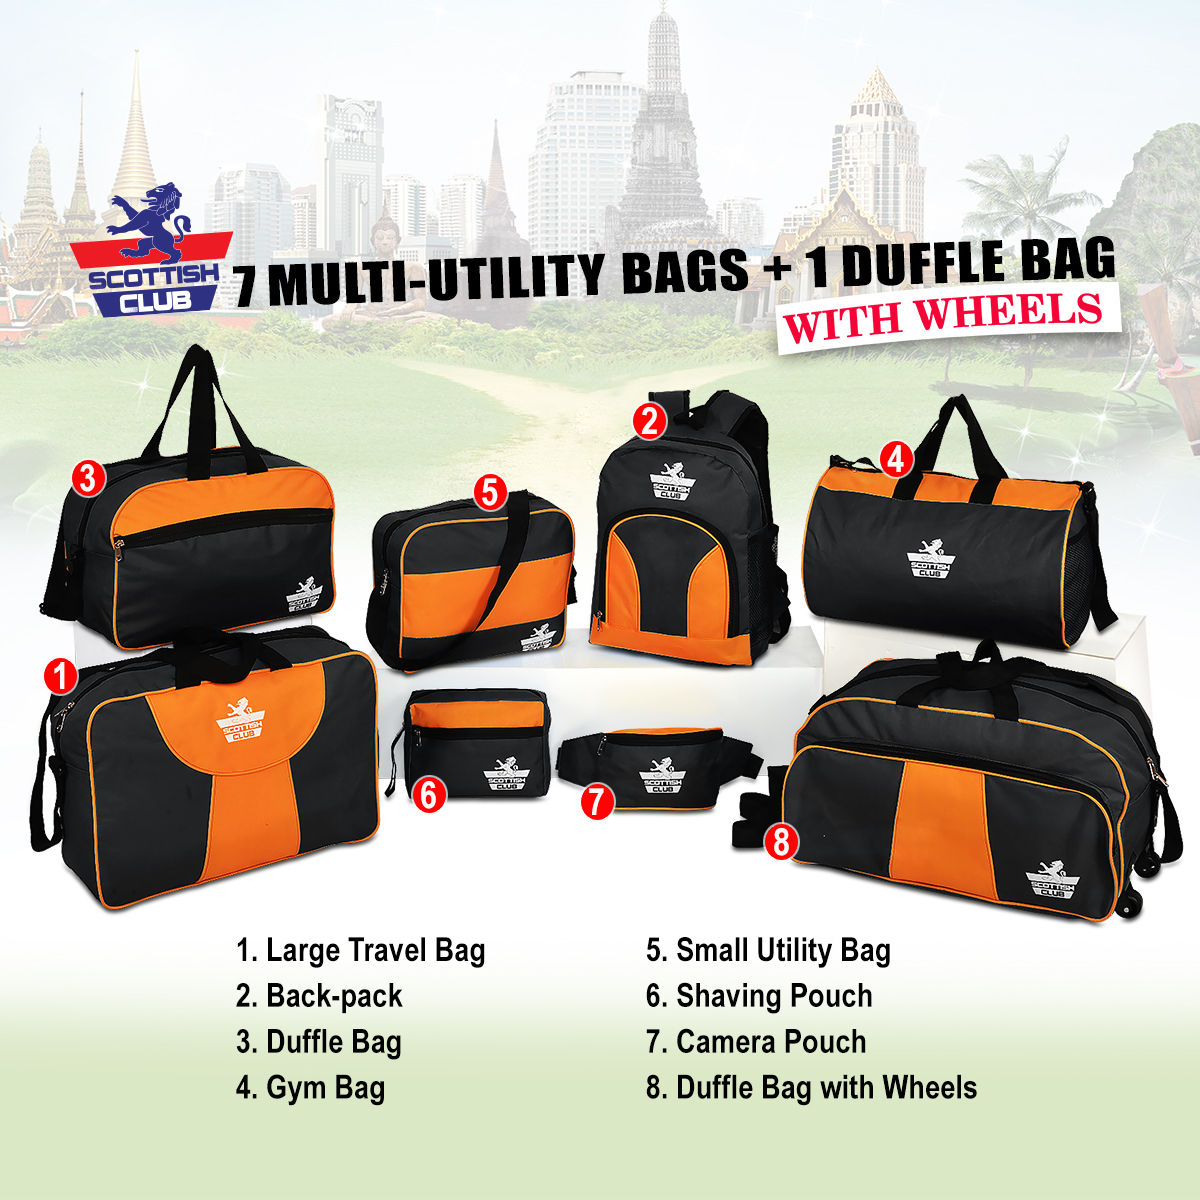 Buy 7 Multi-utility Bags + 1 Duffle Bag with Wheels Online at Best Price in  India on Naaptol.com bfeb2df7d7746